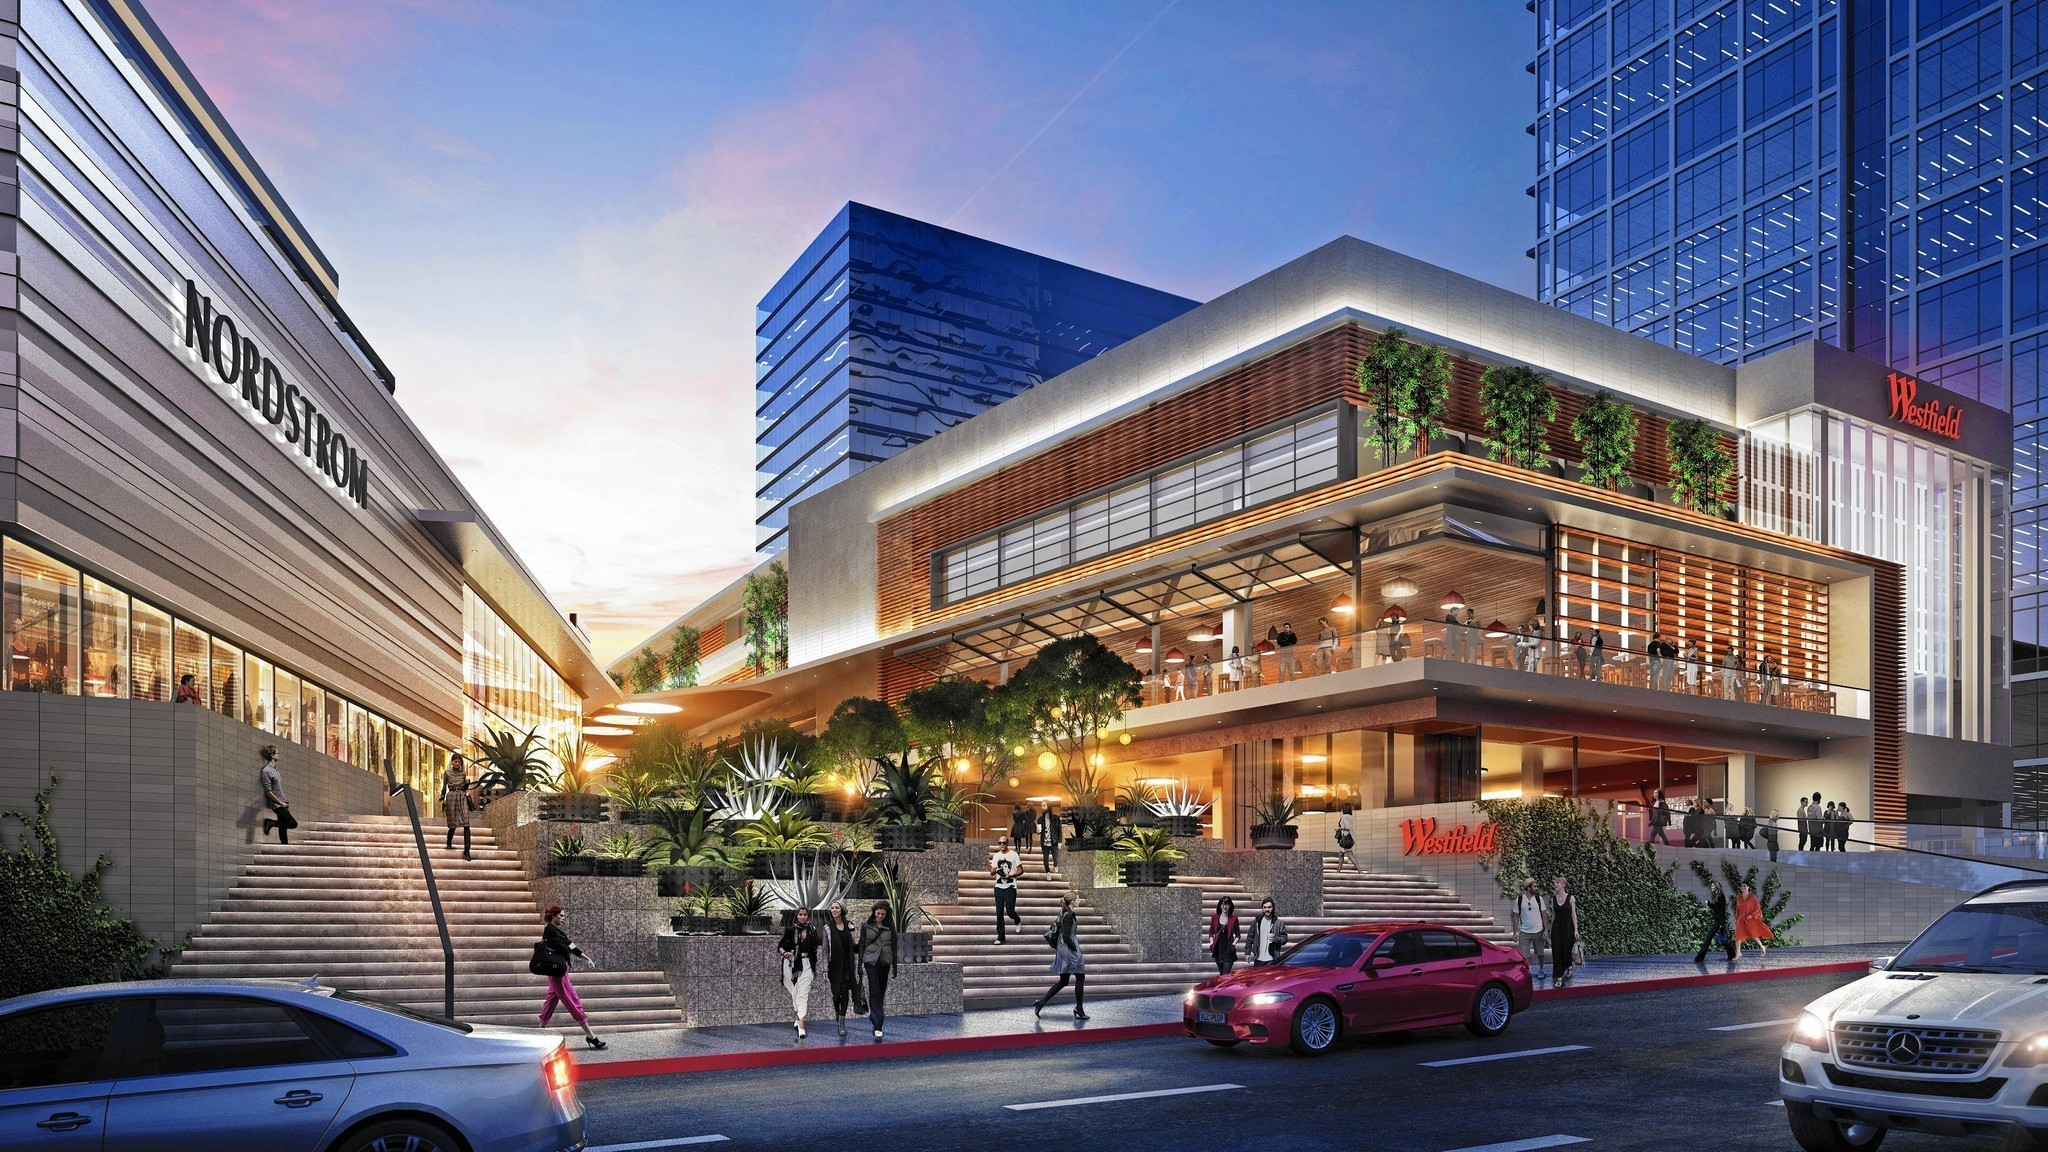 3d Brick Wallpaper Philippines Nordstrom And Eataly Are Helping Century City S Mall Go